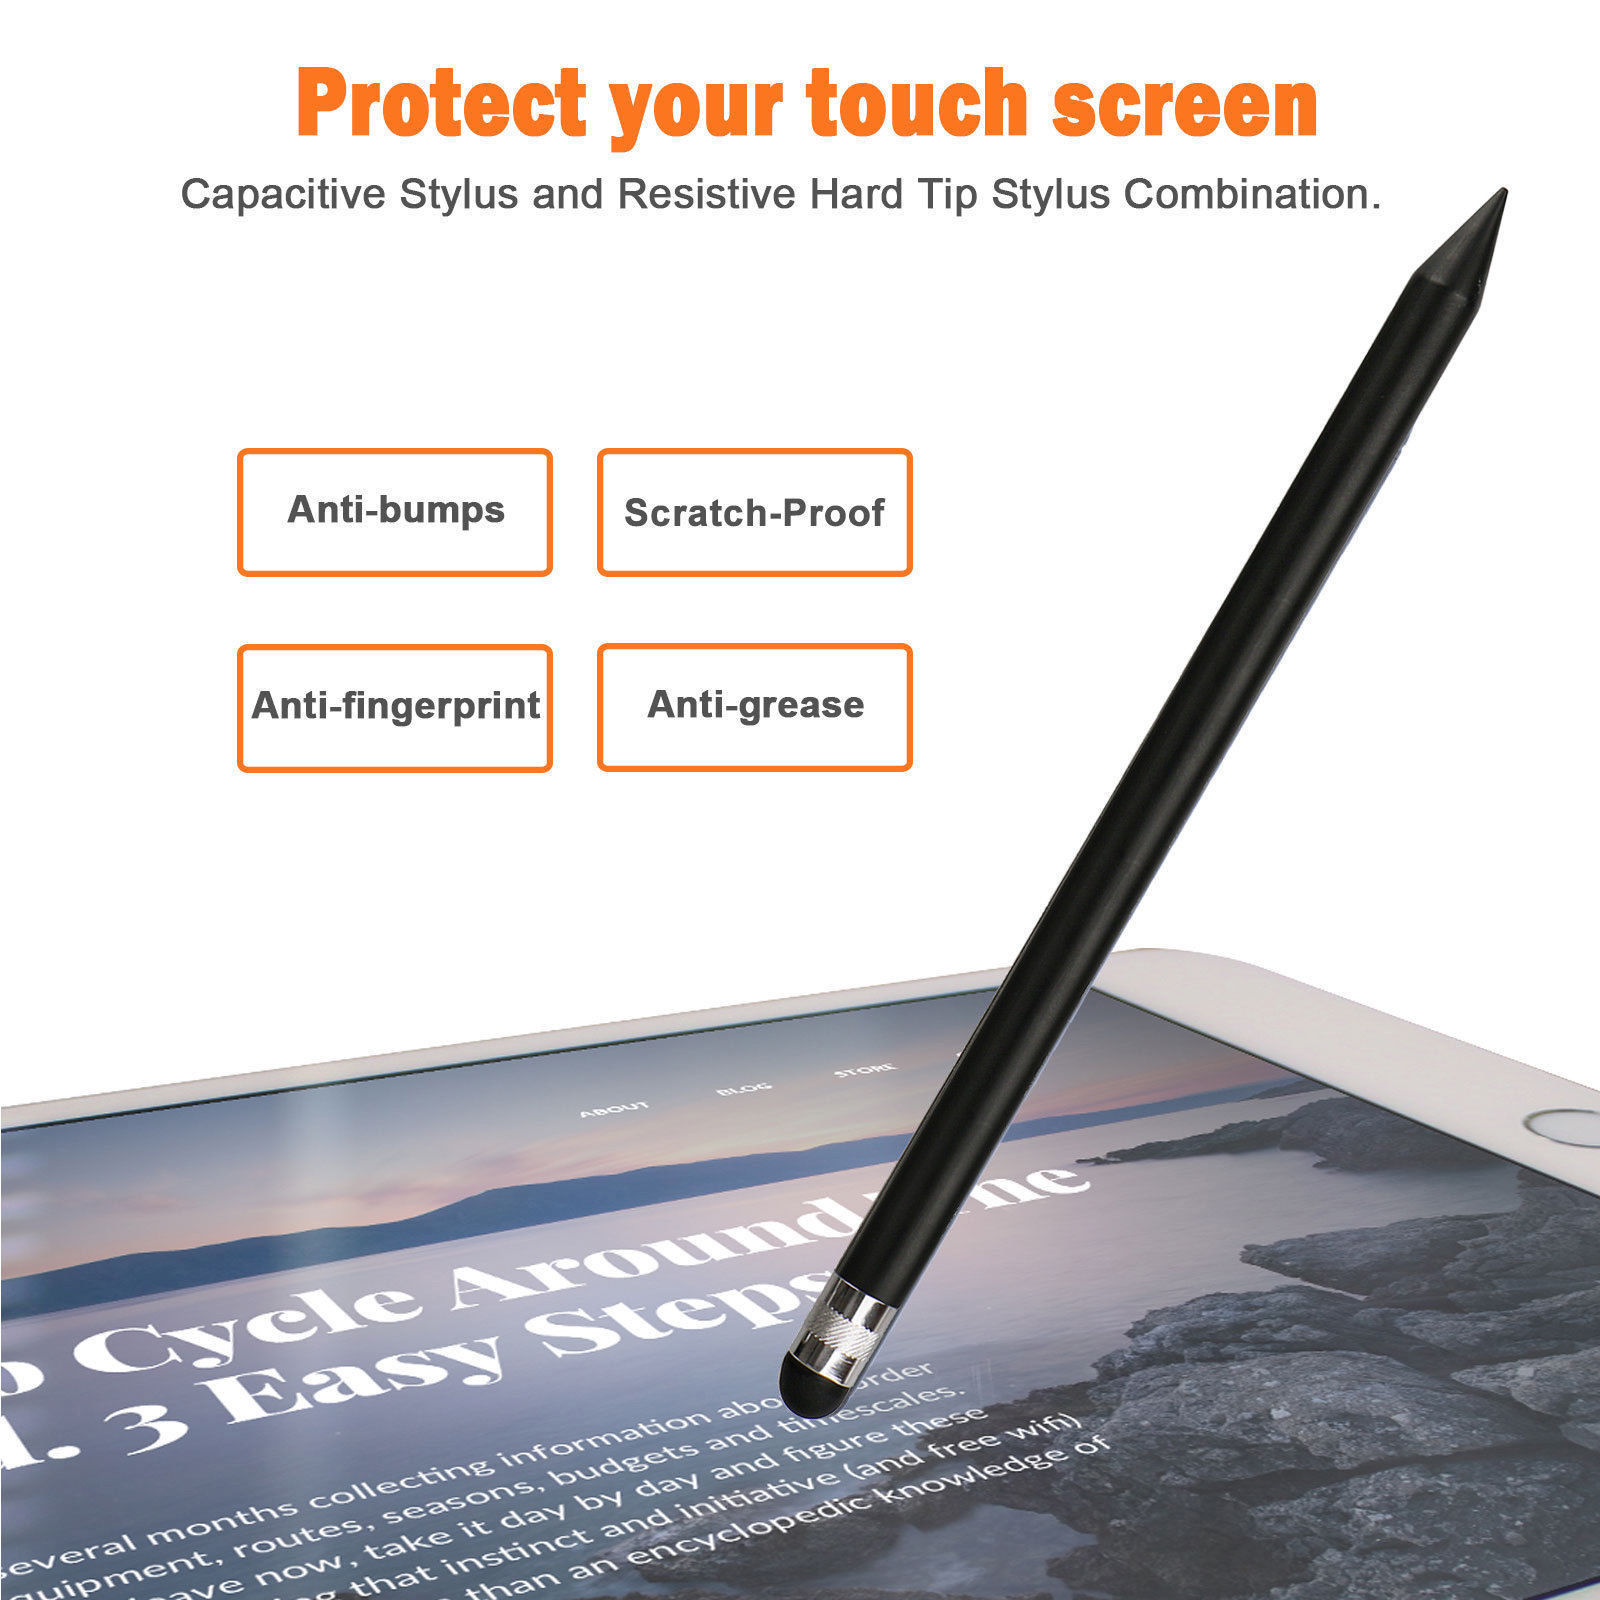 Capacitive-Pen-Touch-Screen-Stylus-Pencil-for-Tablet-iPad-Cell-Phone-Samsung-PC thumbnail 5